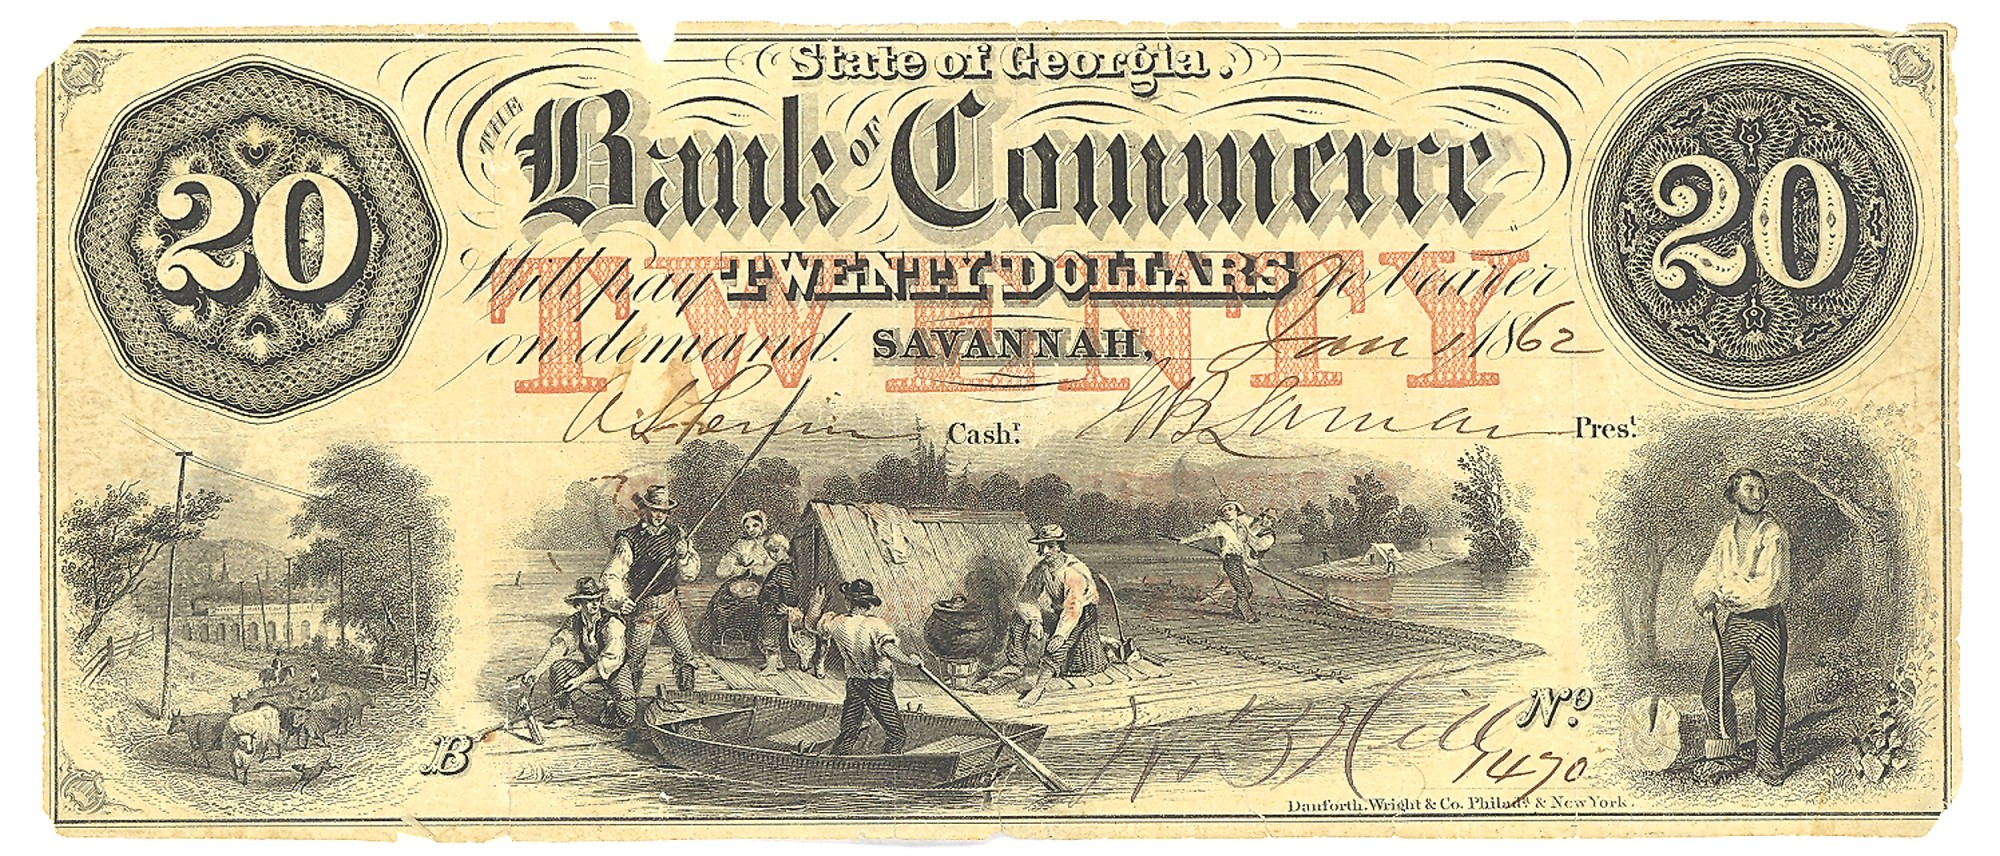 BANK OF COMMERCE, GEORGIA, $20 NOTE